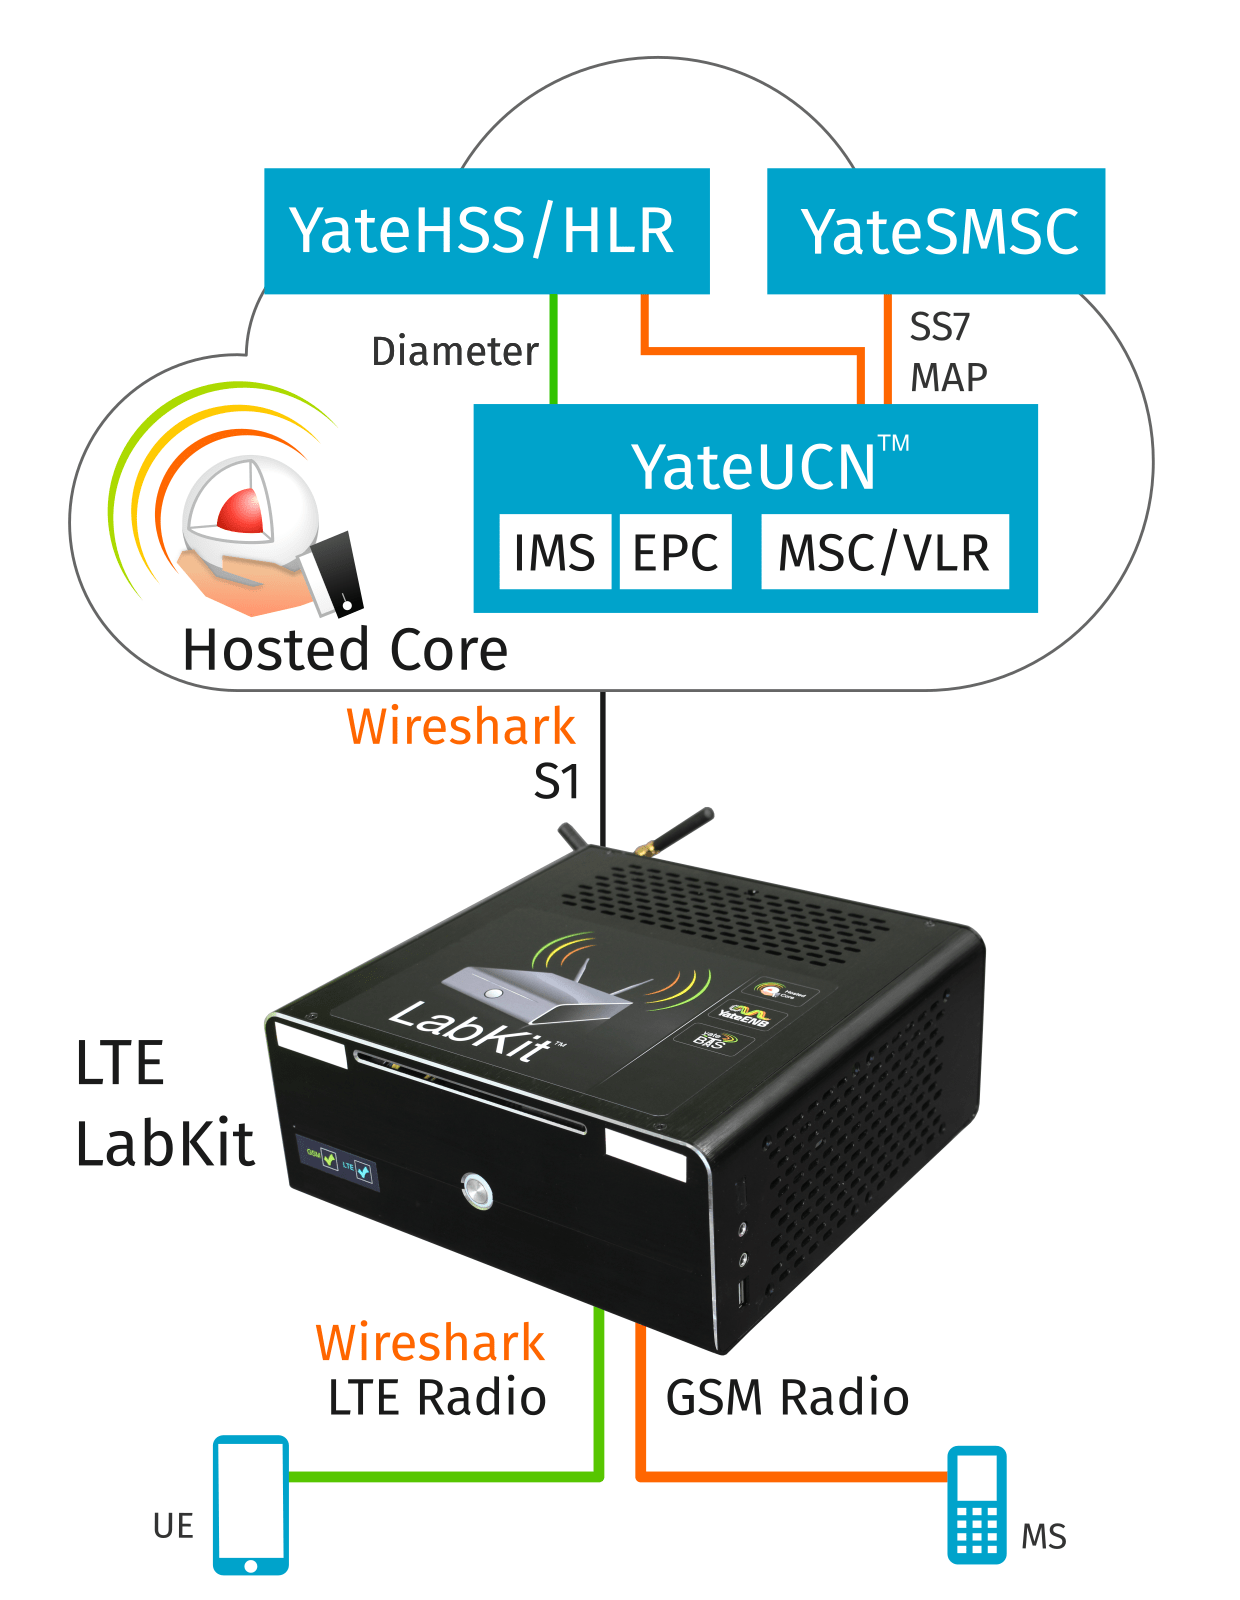 lte-labkit-and-hosted-core-gsm-lte-core-network.png